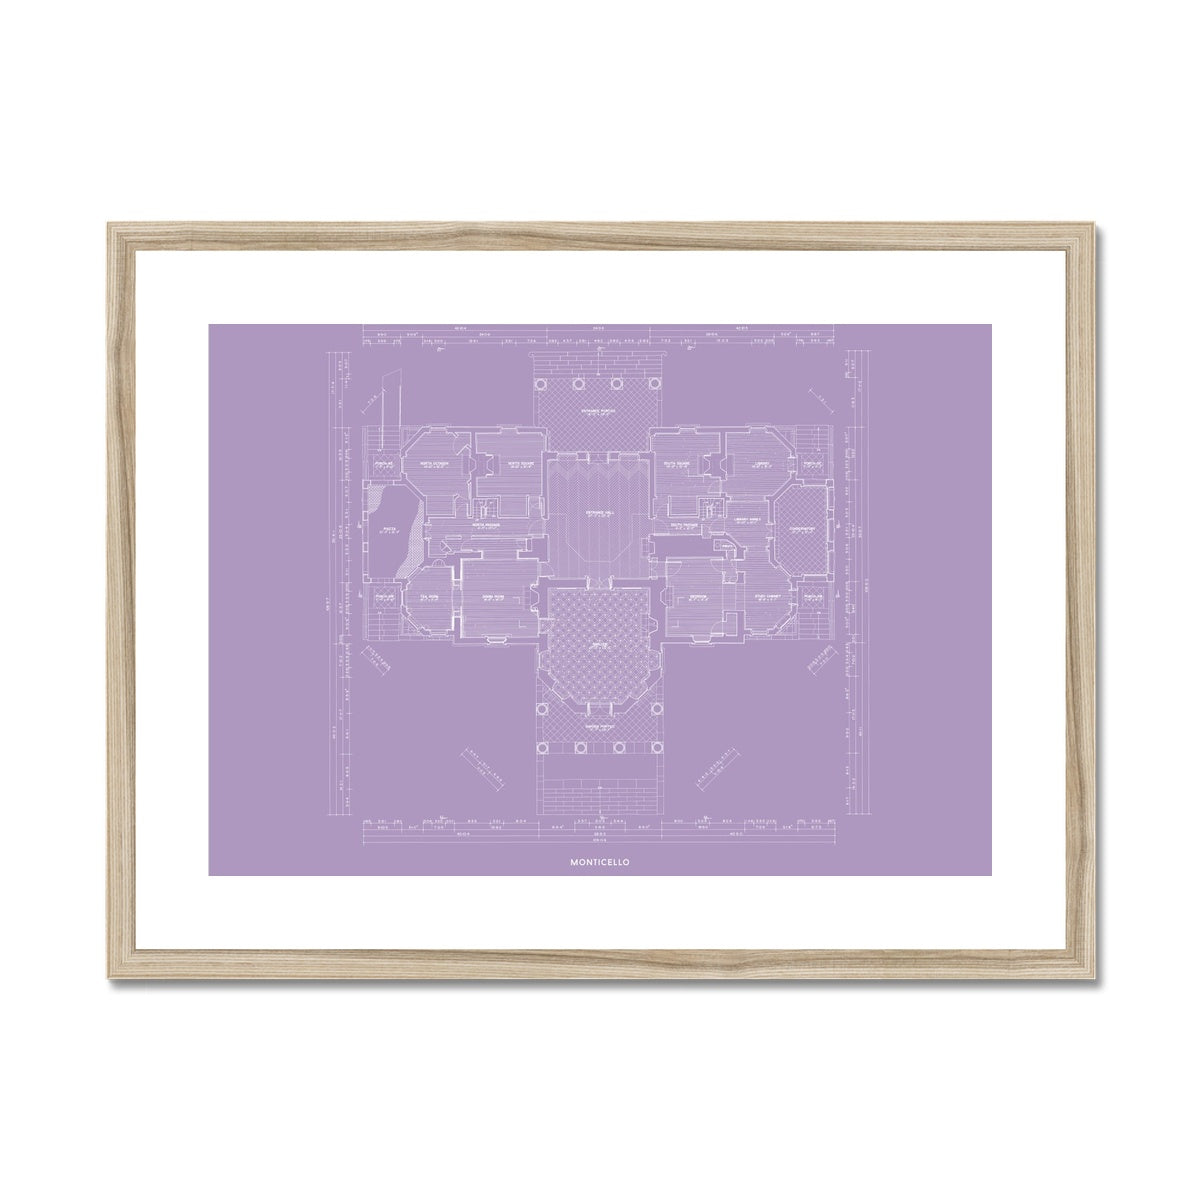 Monticello - First Floor Plan - Lavender -  Framed & Mounted Print